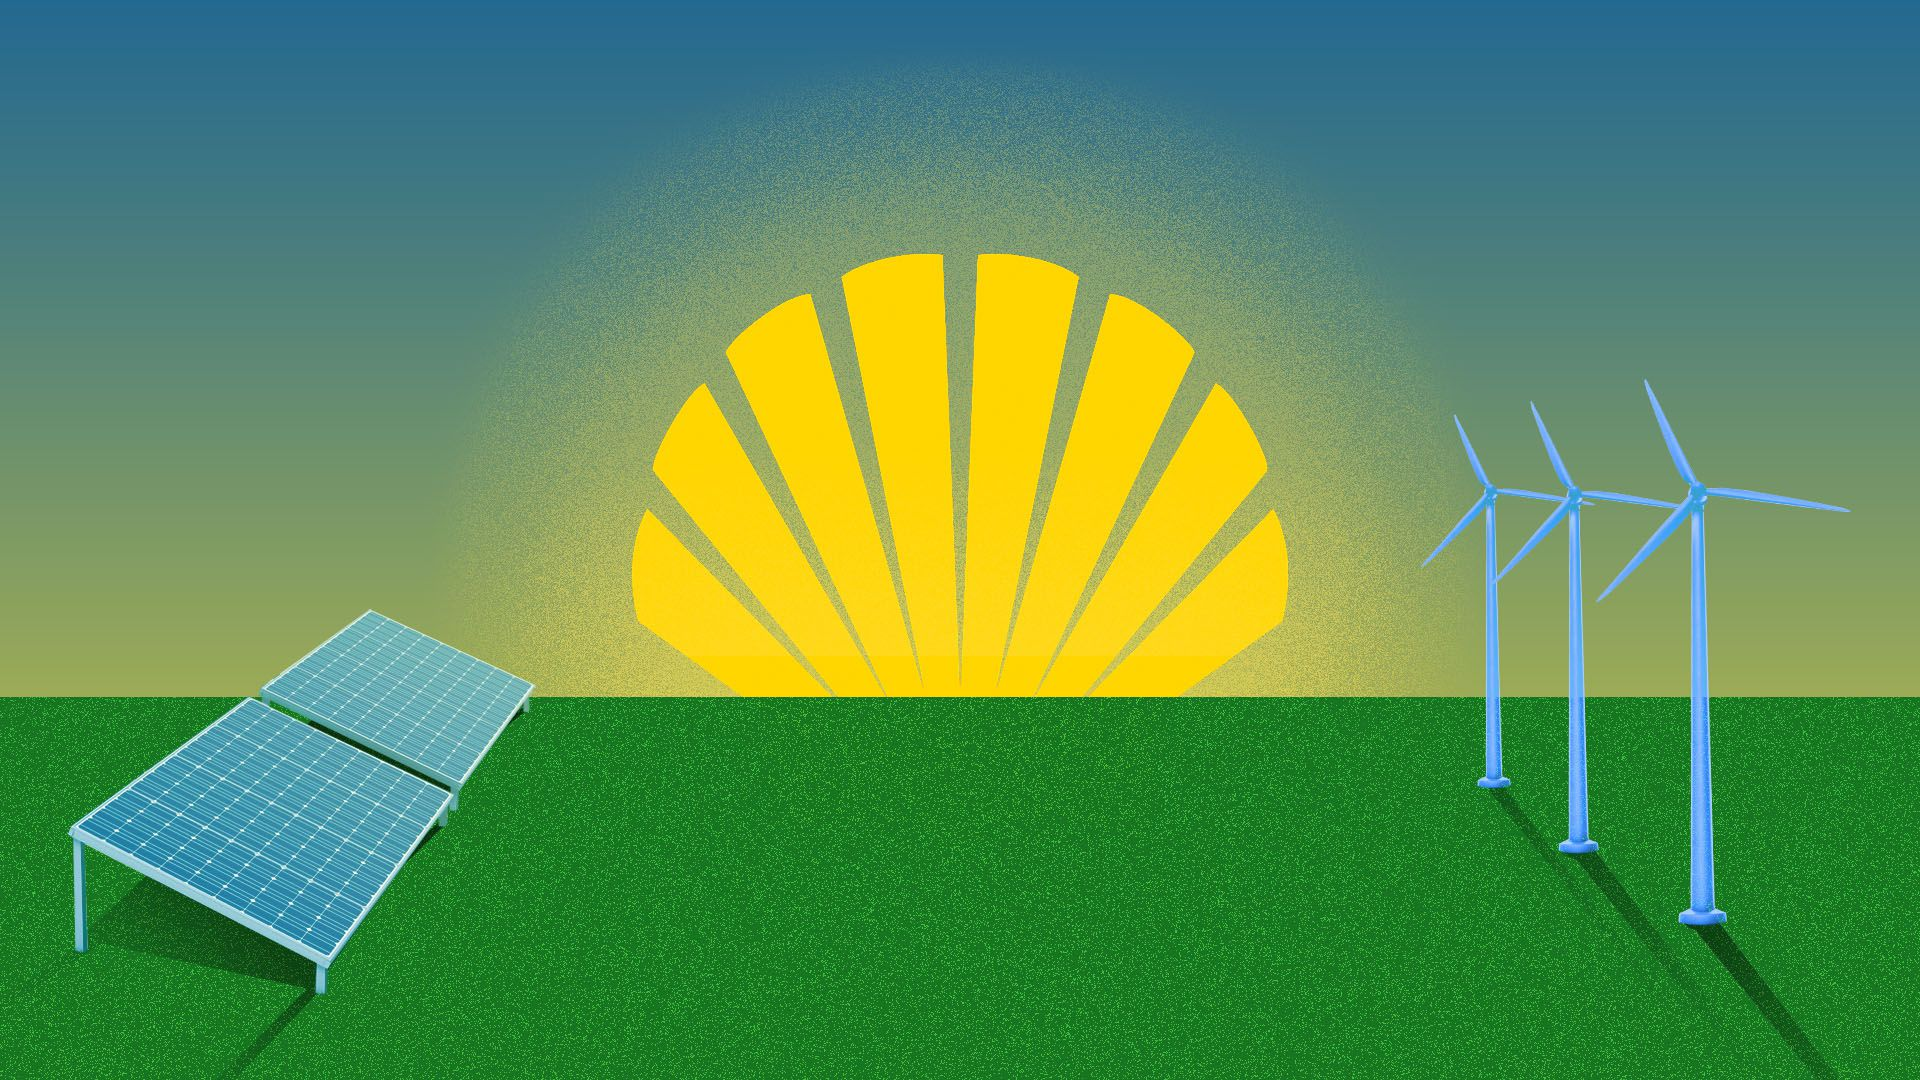 Shell leads big oil producers in climate change, clean energy shift